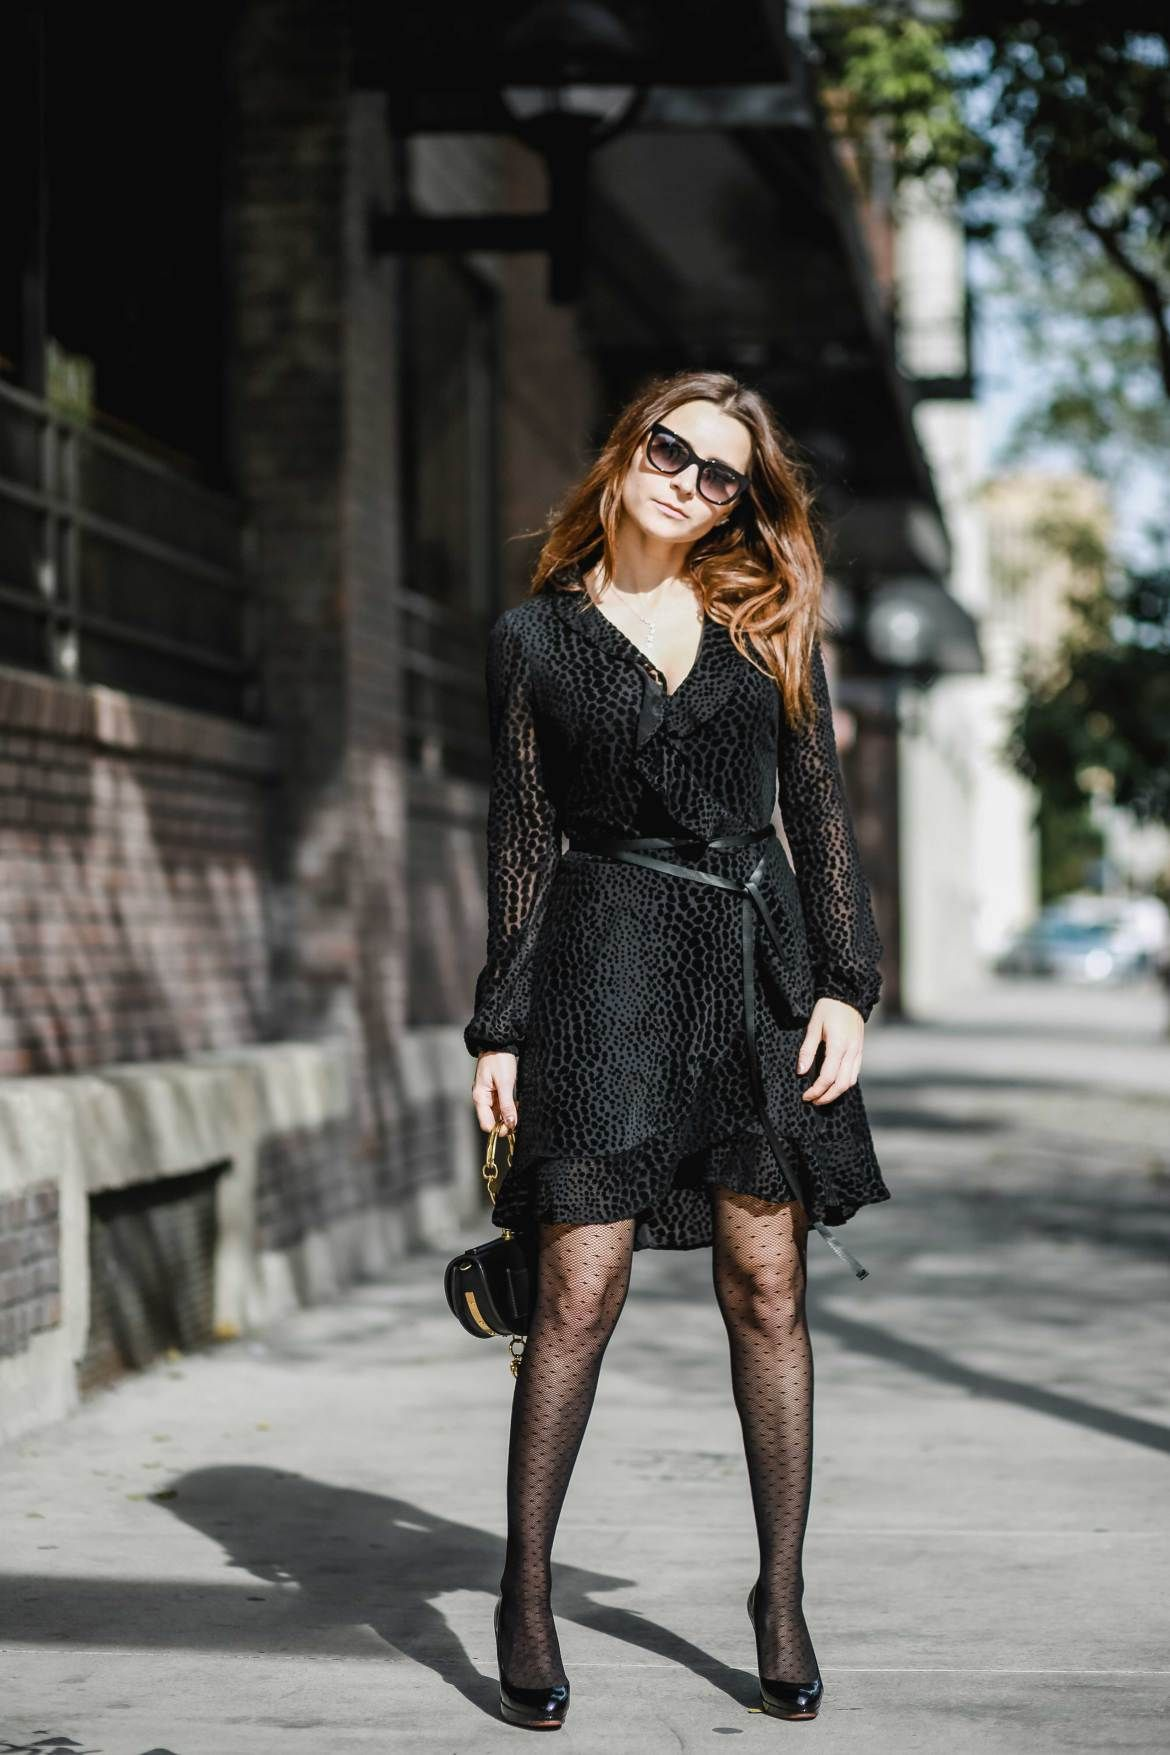 New dresses eve years under 100 pictures advise to wear for on every day in 2019